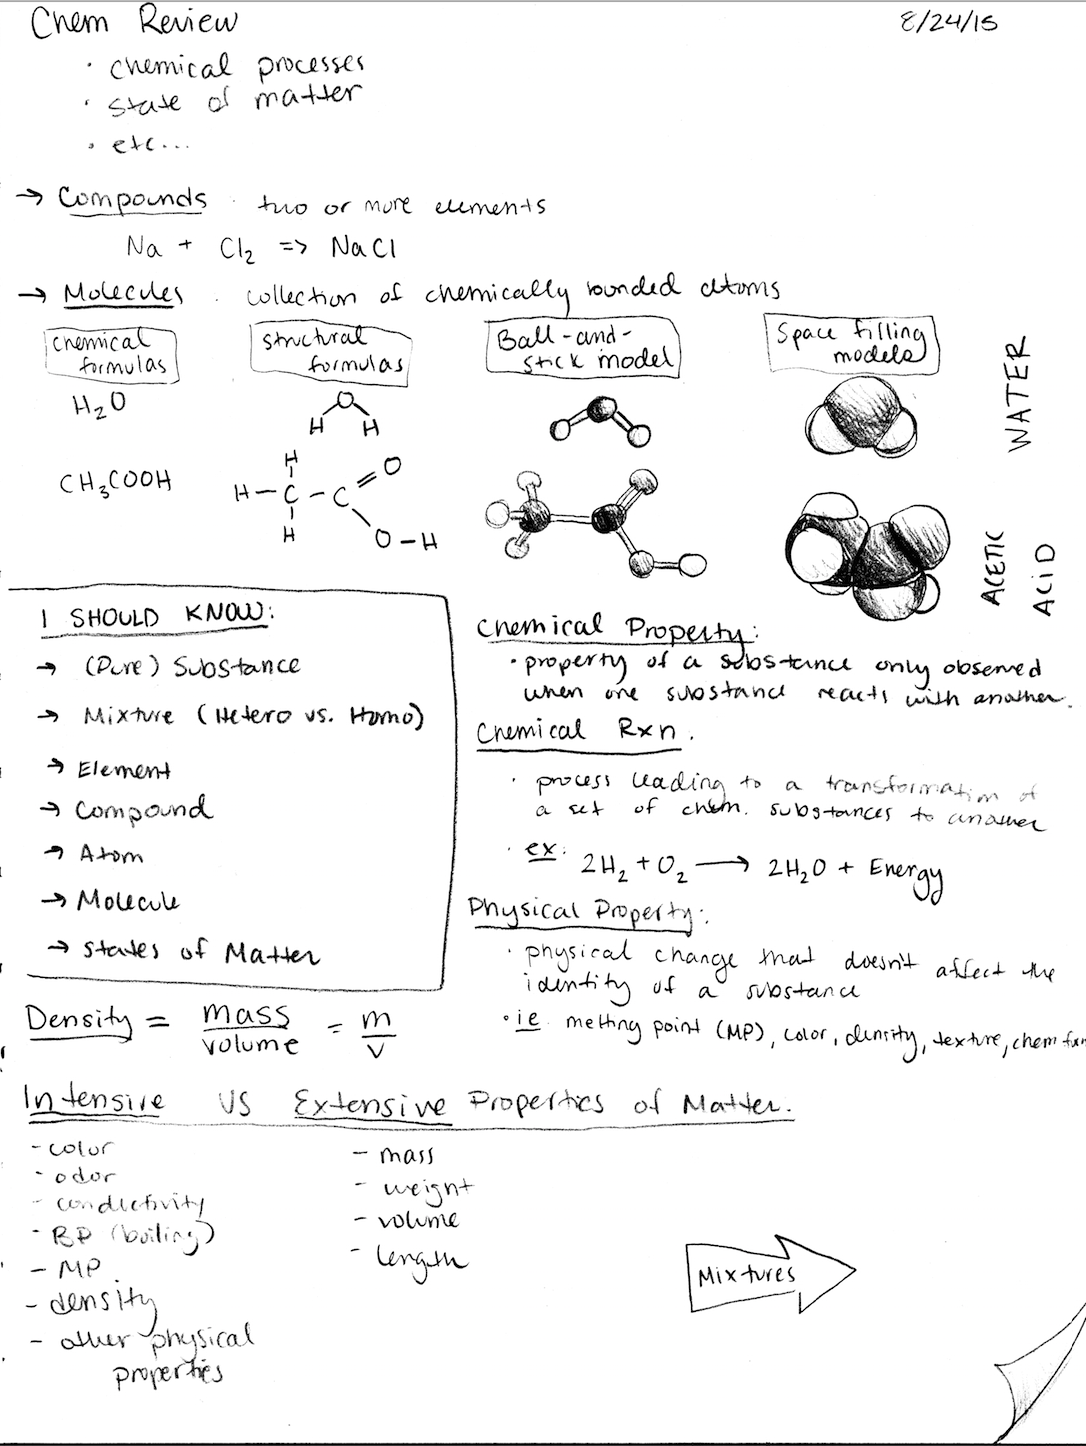 Sci 030 - Class Notes - Week 1